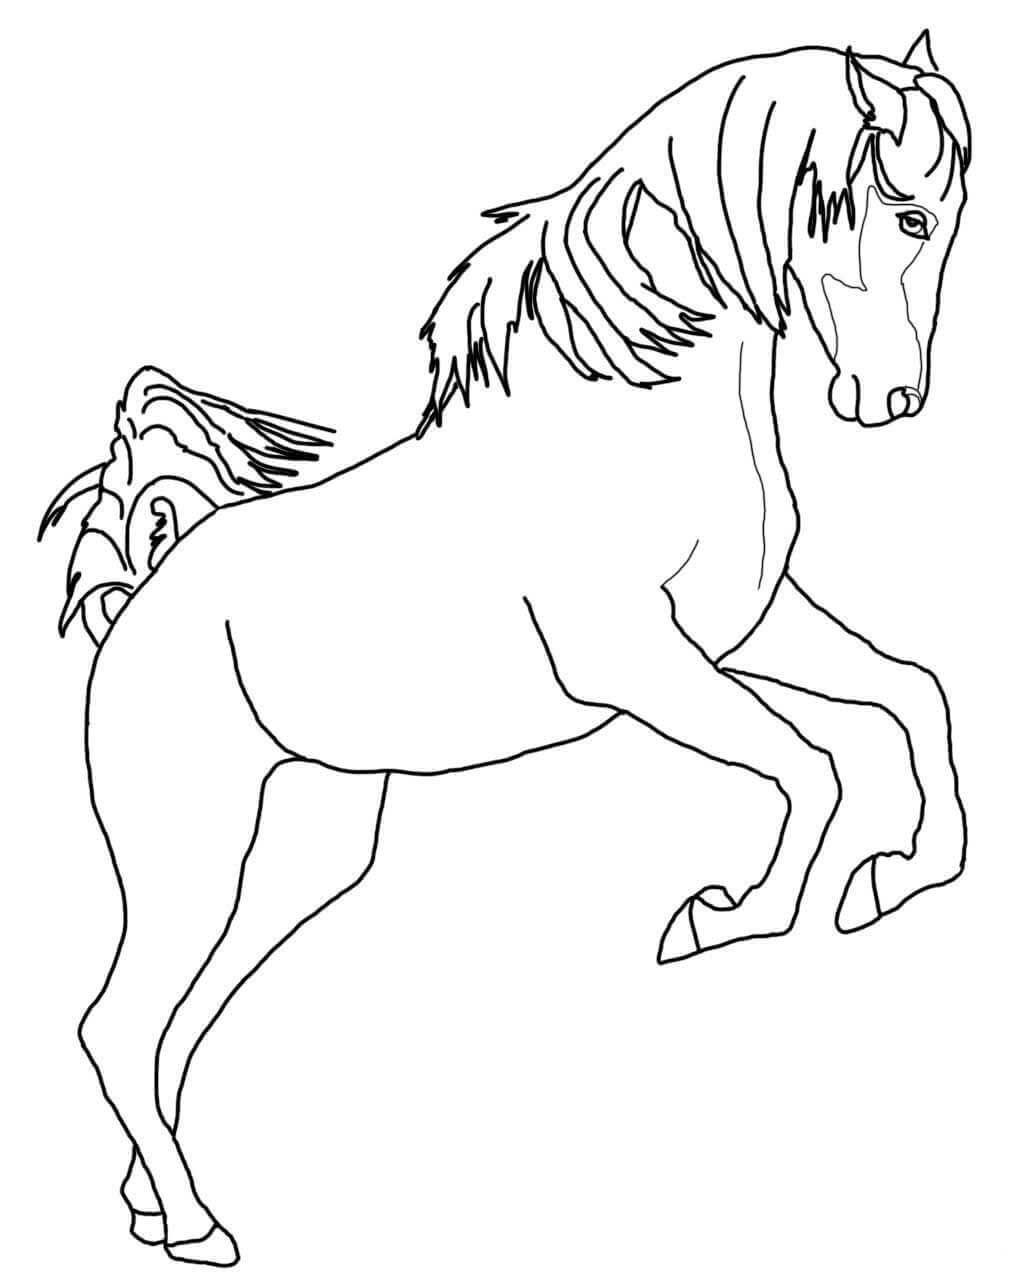 Rearing Arabian Horse Coloring Page Horse Coloring Pages Horse Coloring Animal Coloring Pages